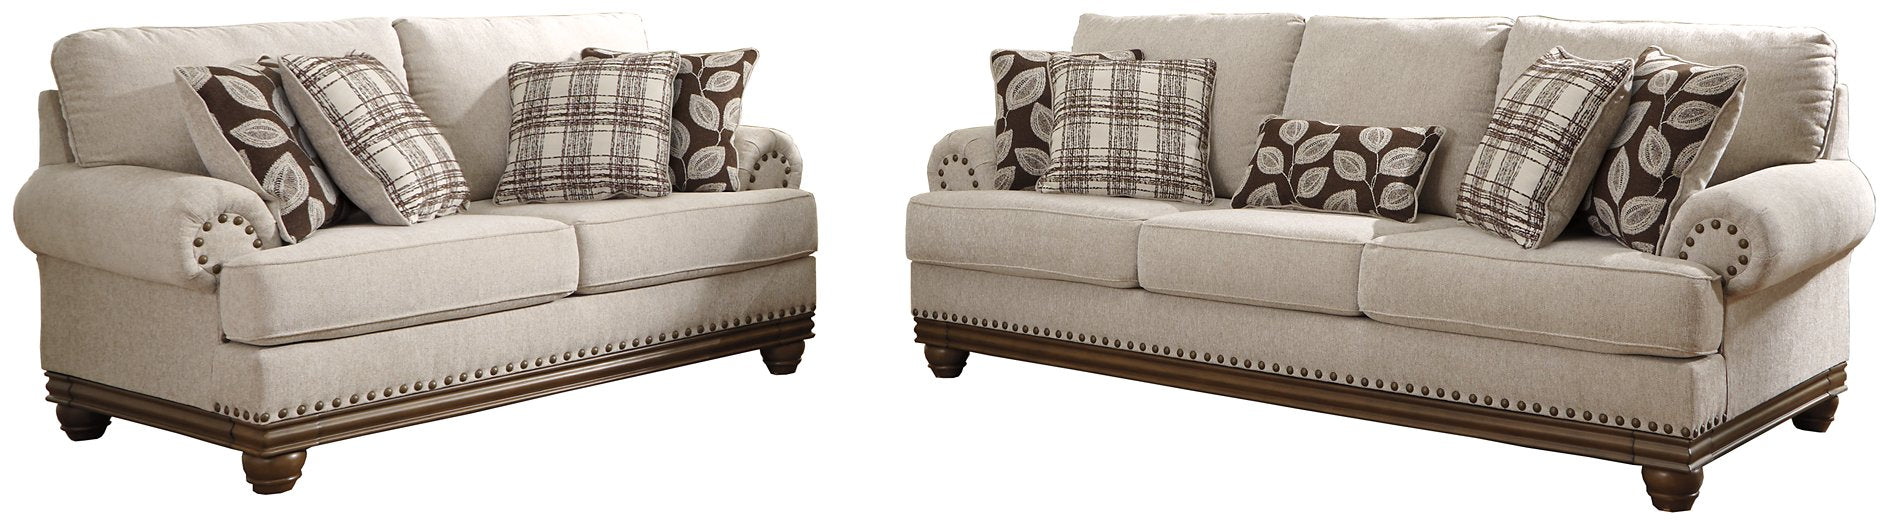 Harleson Signature Design 2-Piece Living Room Set image